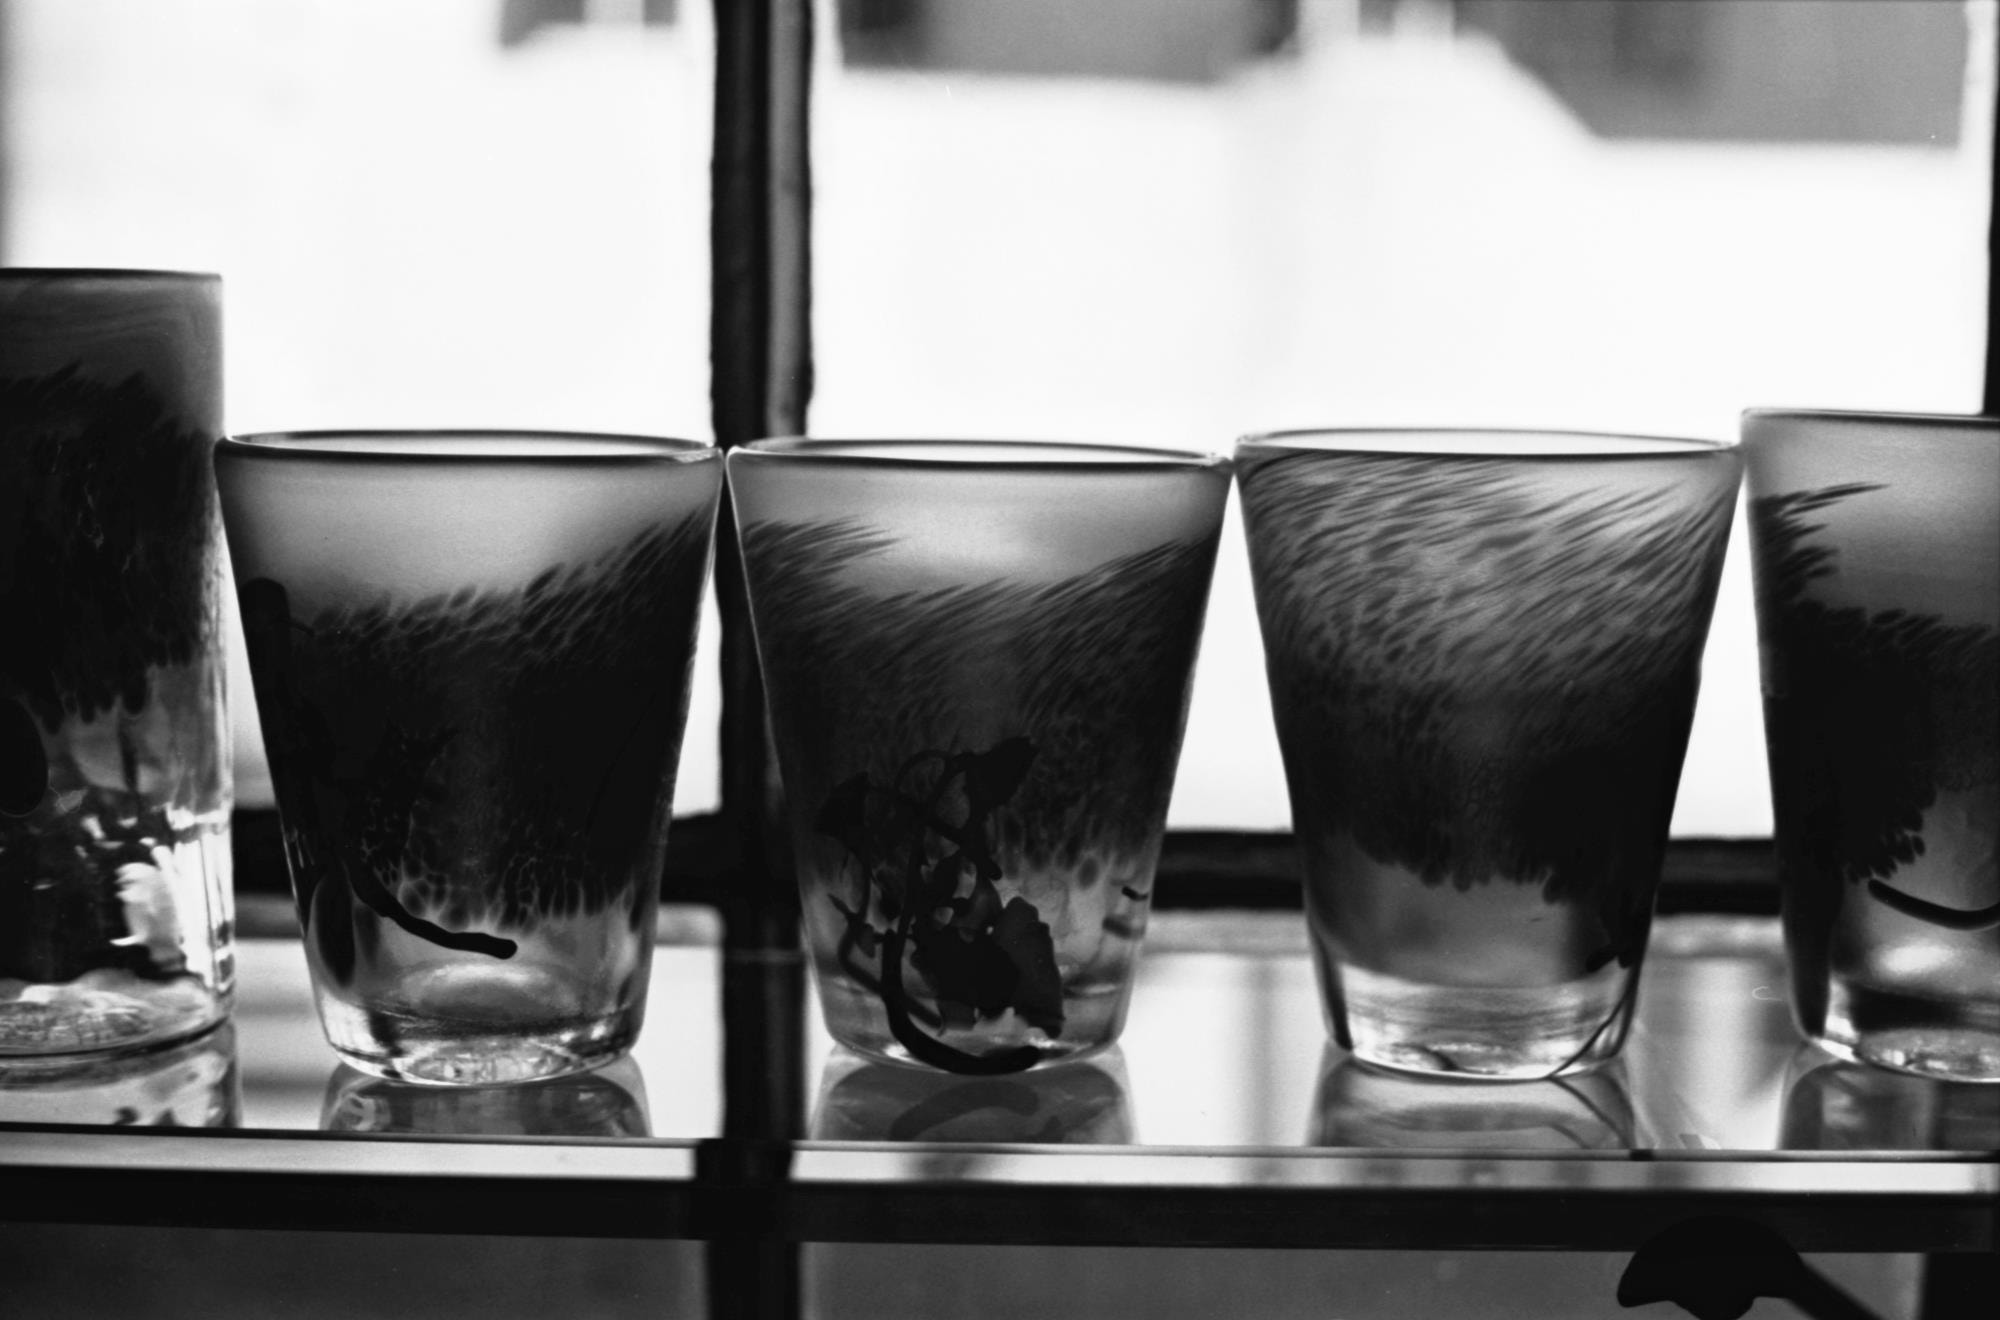 Photograph Cups by Thomas Webb on 500px